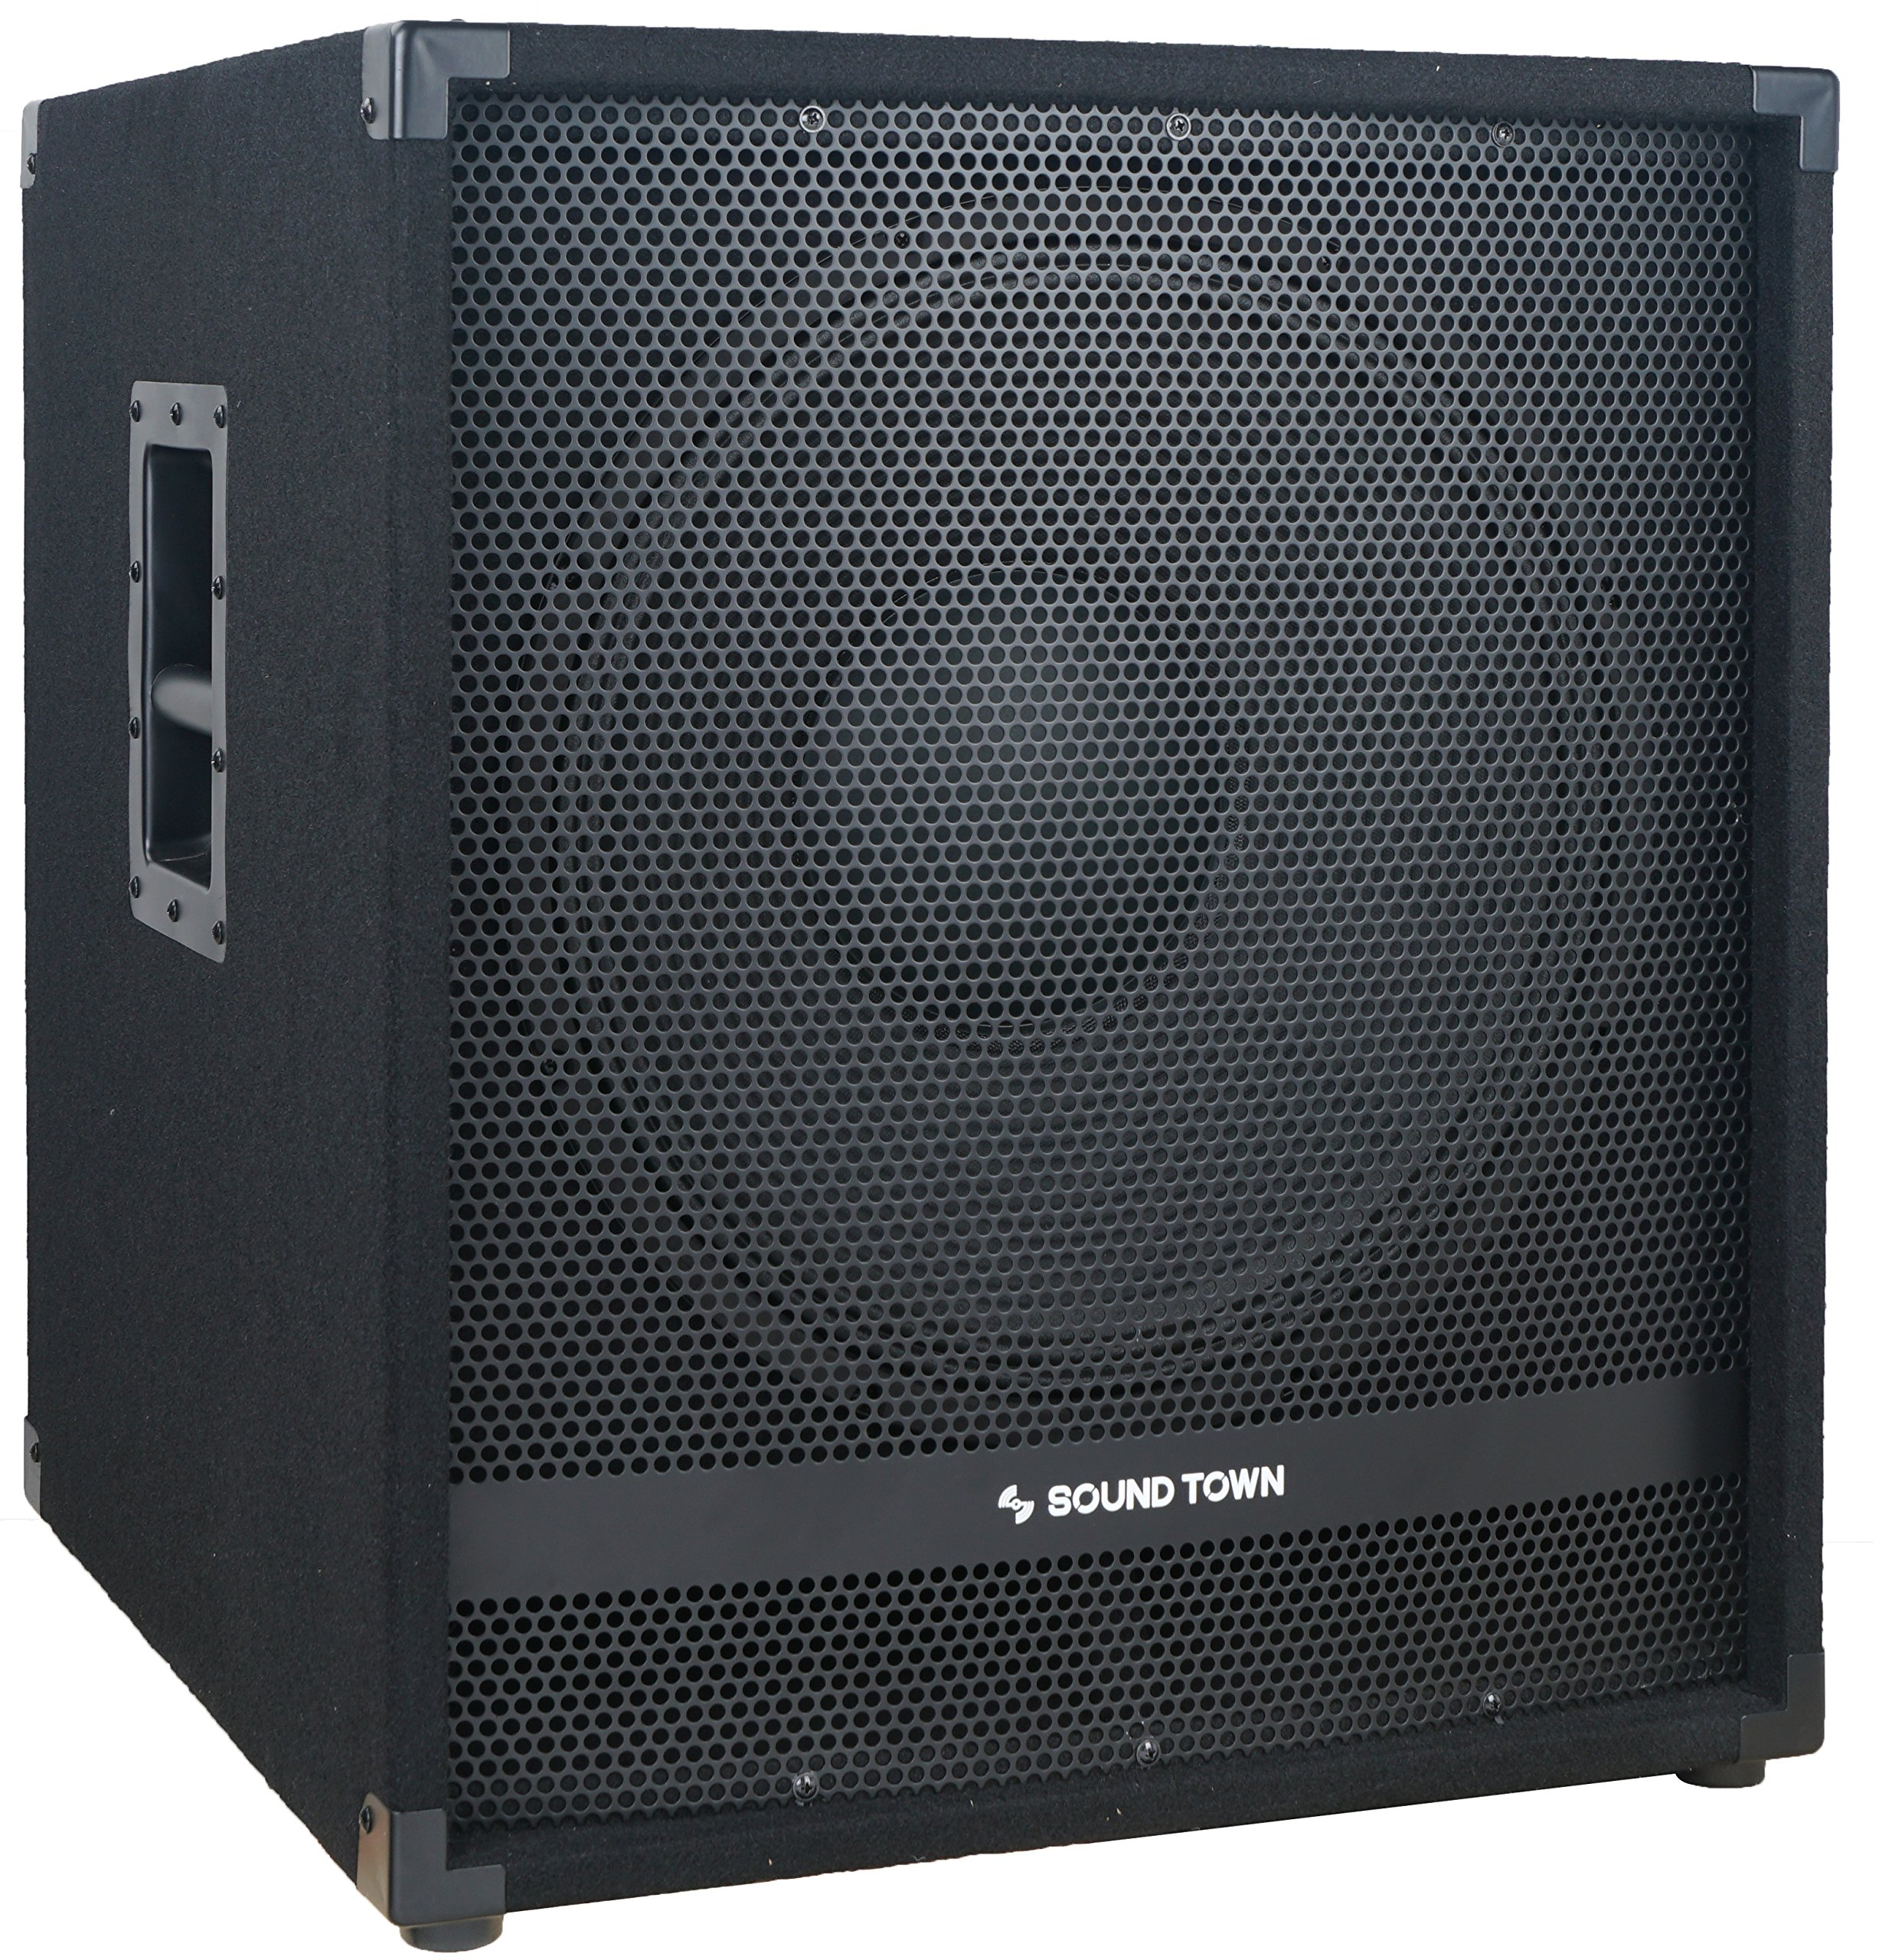 Sound Town METIS Series 1800 Watts 15'' Powered Subwoofer with Class-D Amplifier, 4-inch Voice Coil (METIS-15SDPW)